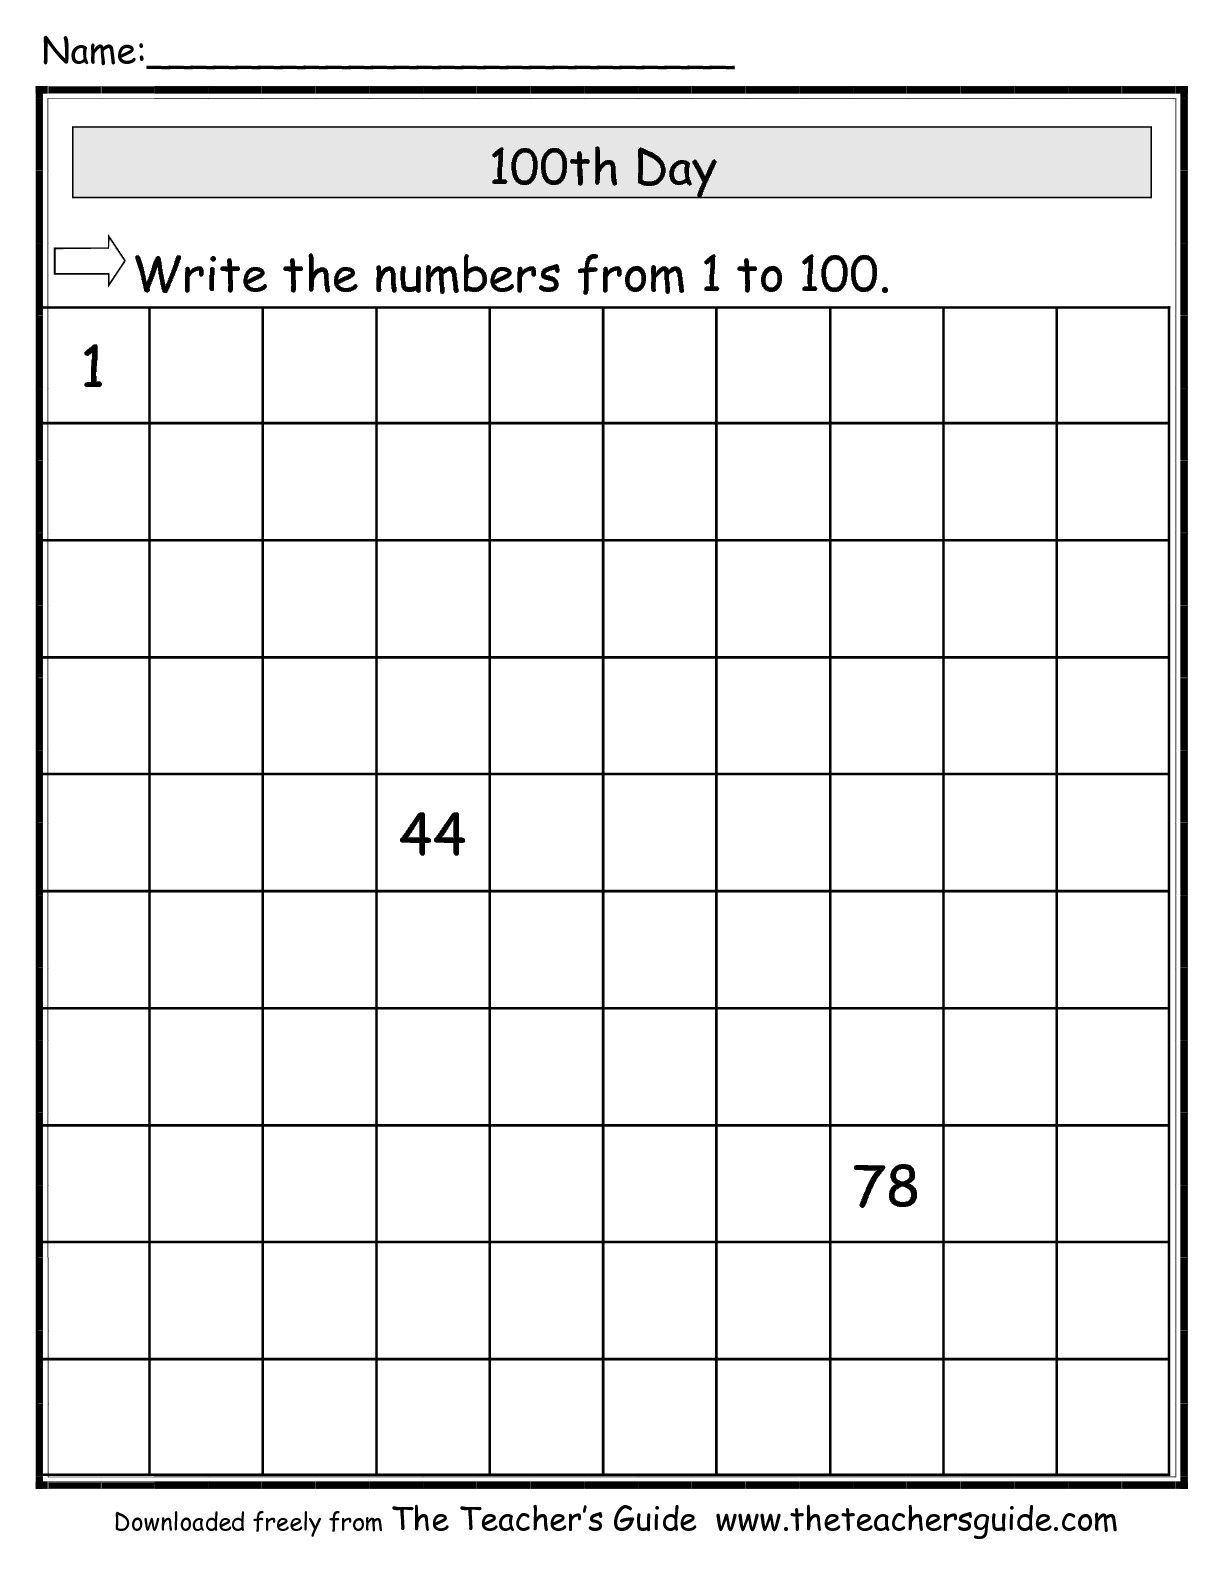 17 Best Images Of Fill In The Missing Numbers Worksheets